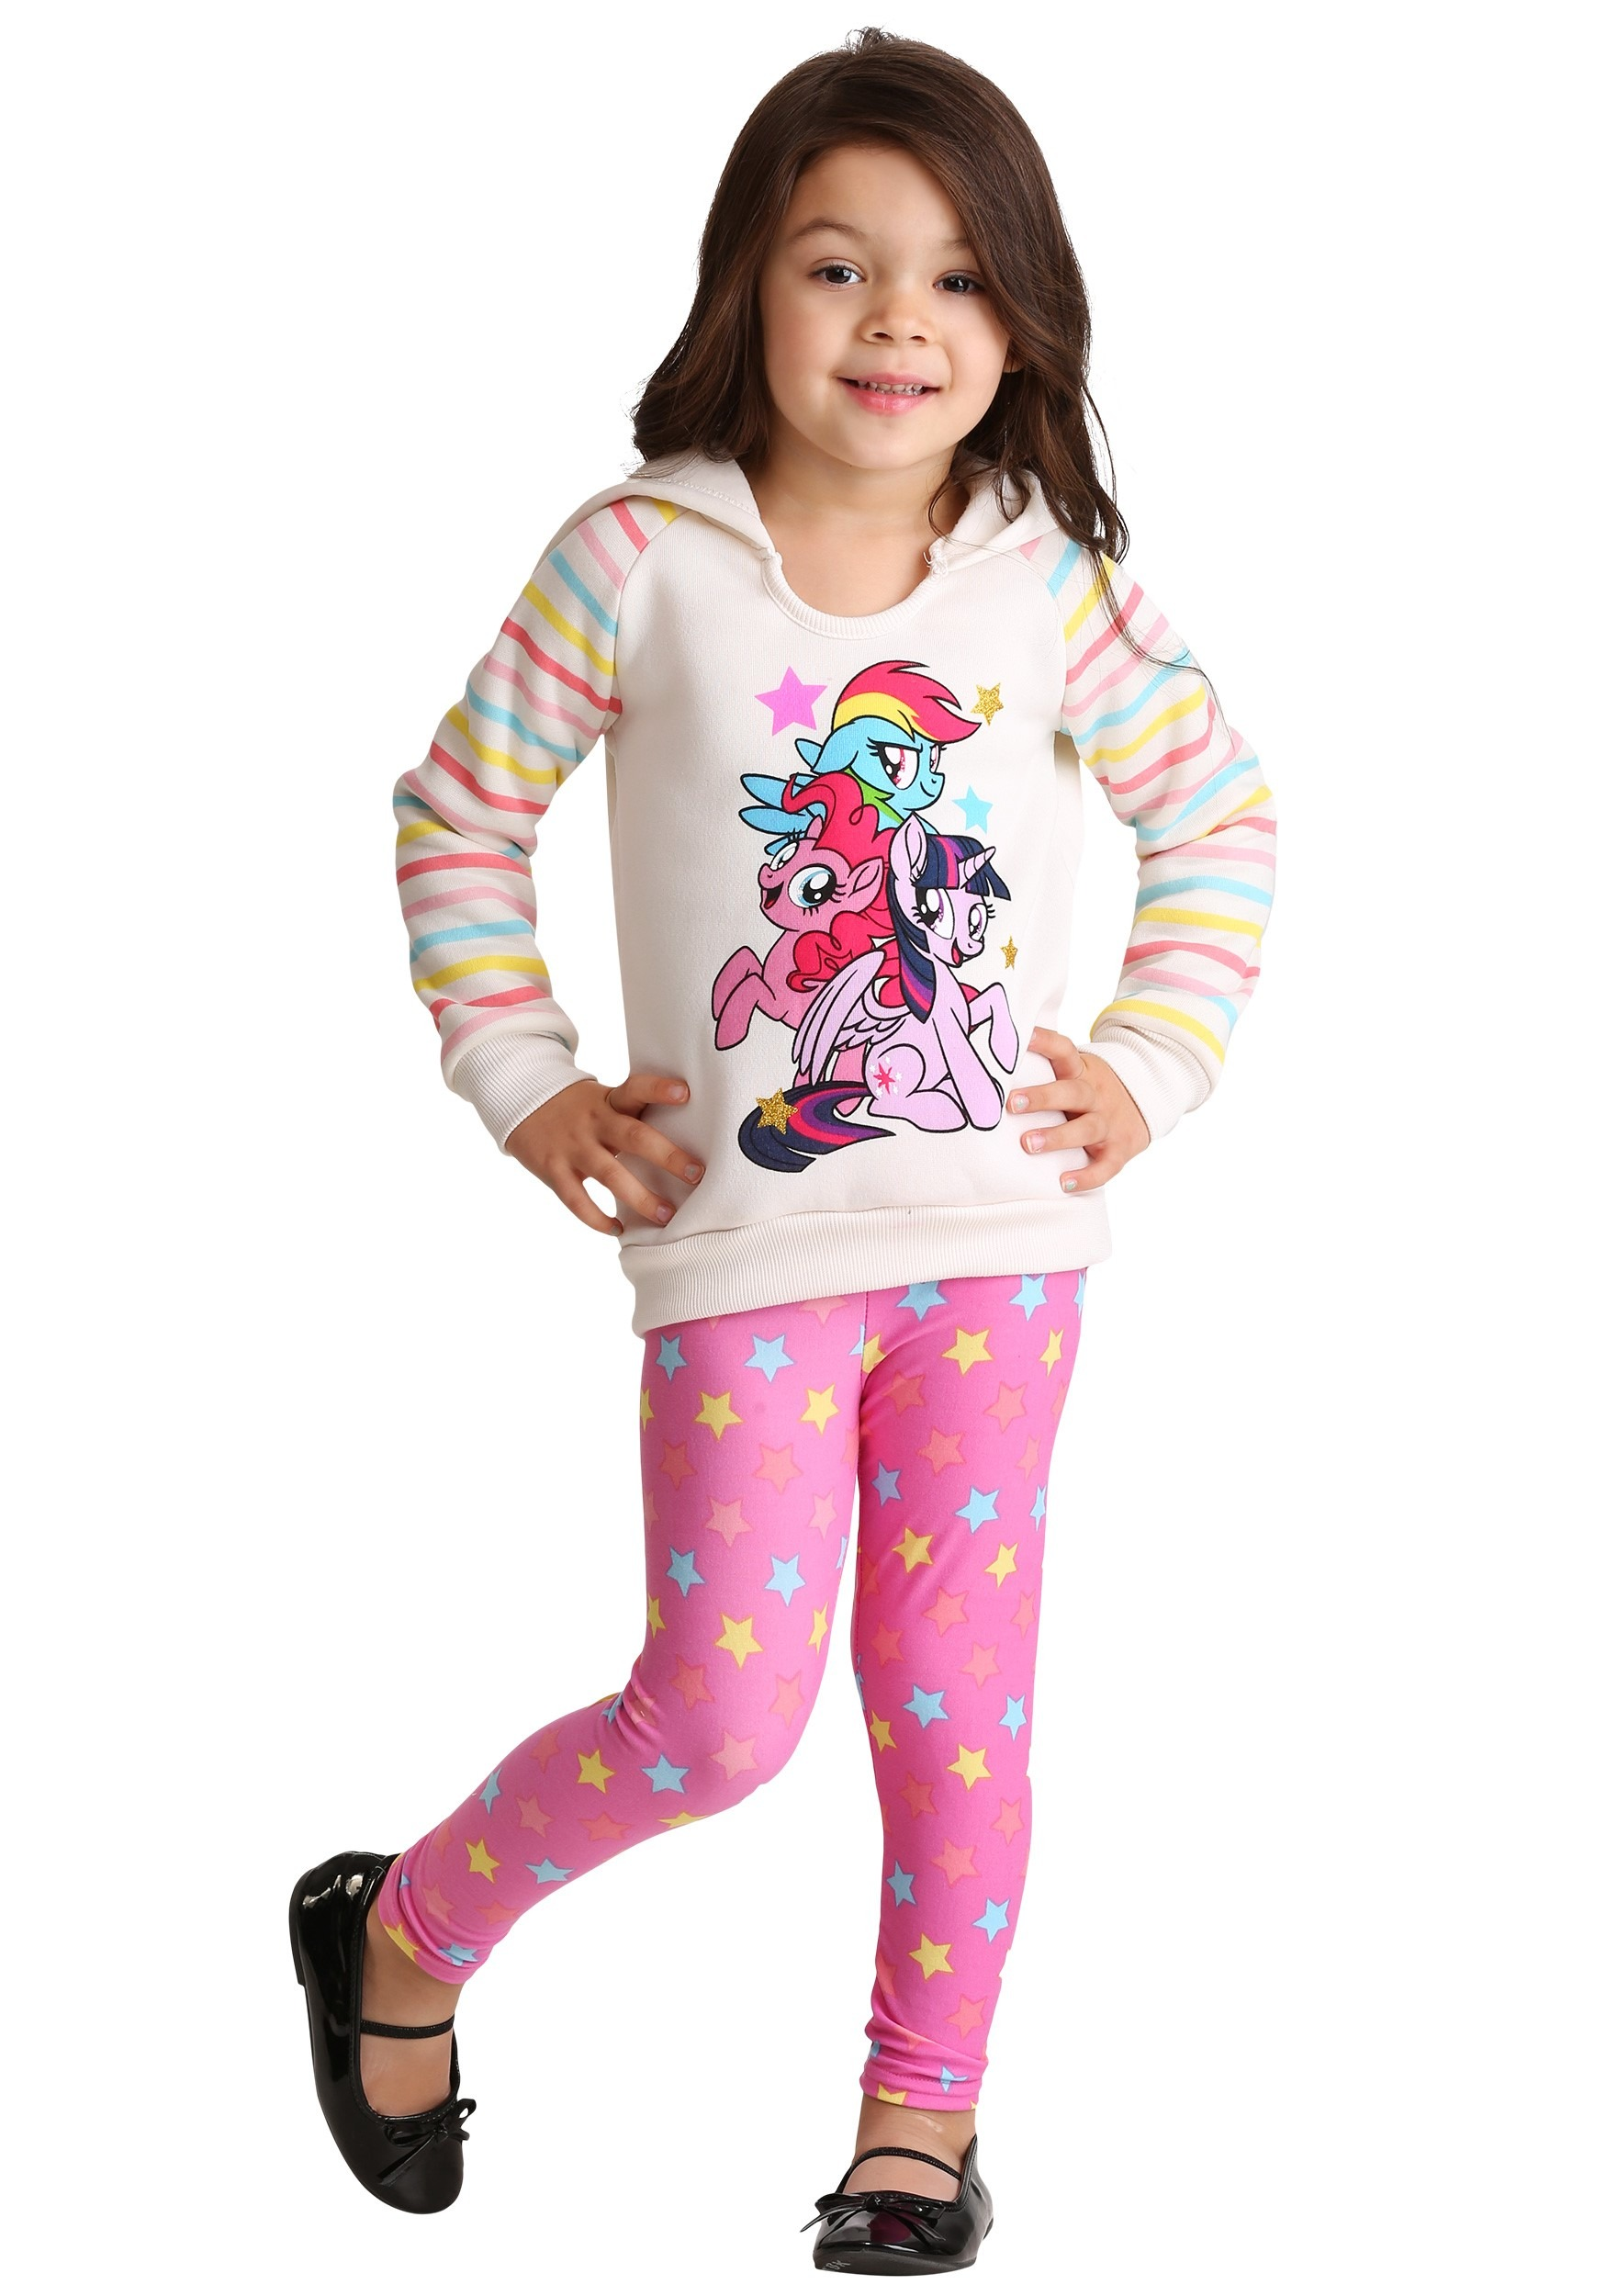 NEW Licensed My Little Pony Girls/' 2-Piece Tunic /& Legging Set Outfit 2T